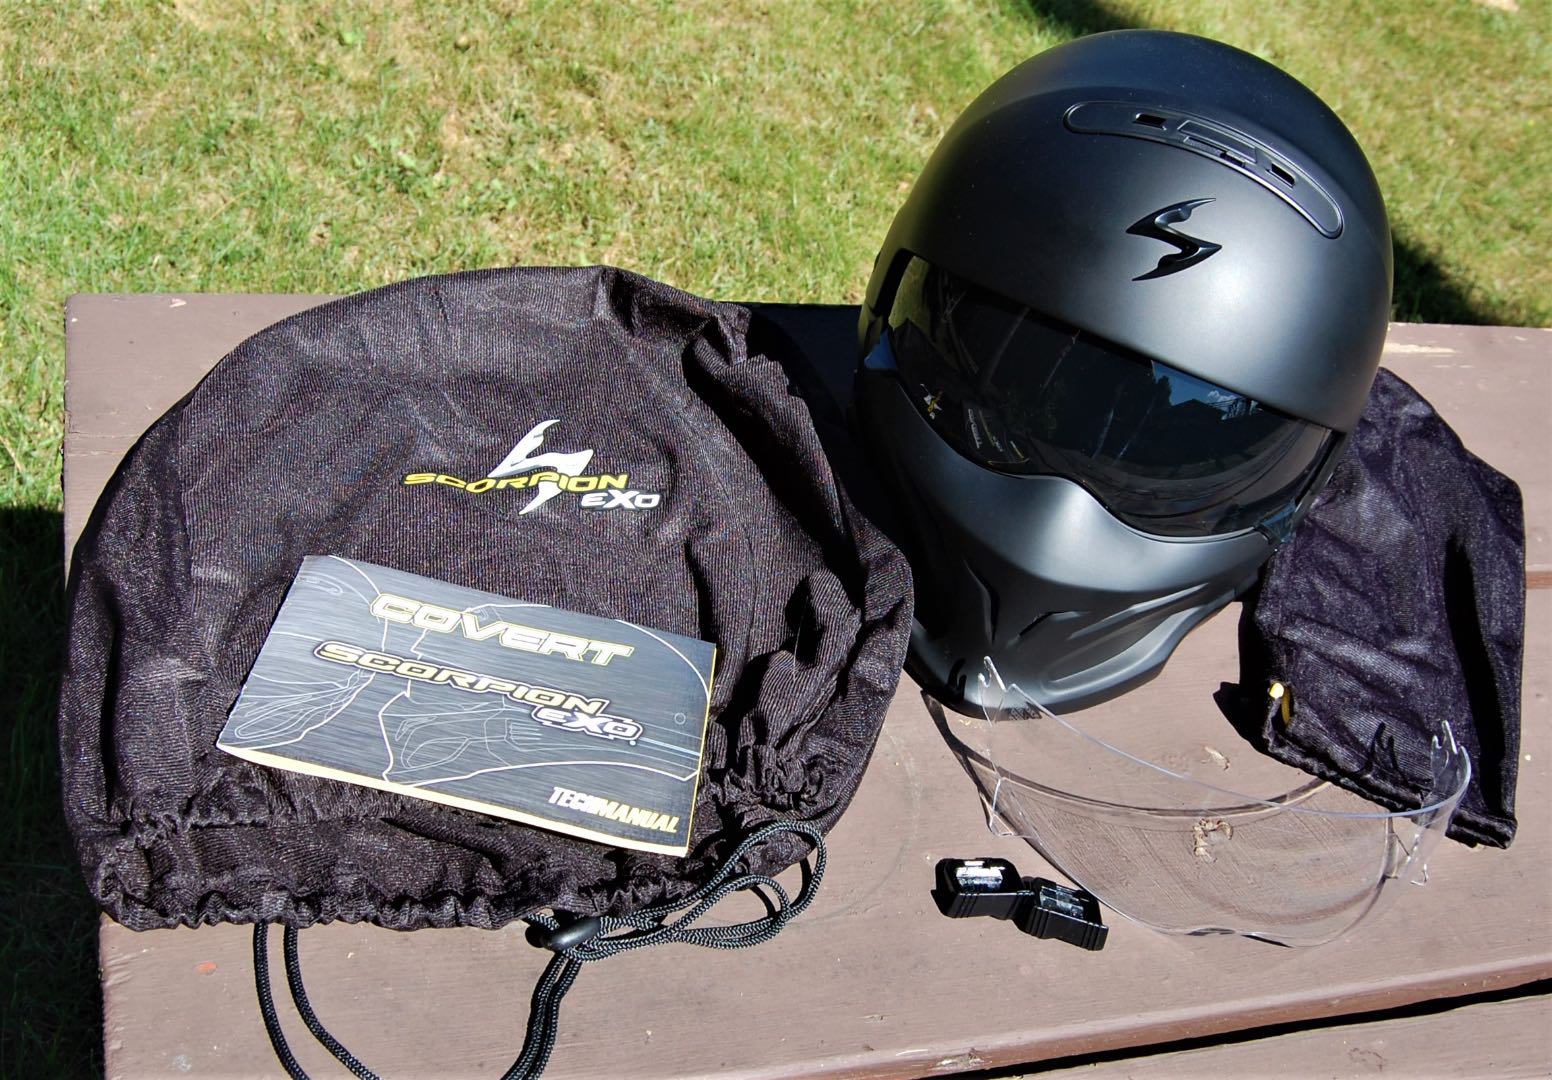 Scorpion Covert 3-in-1 Helmet test